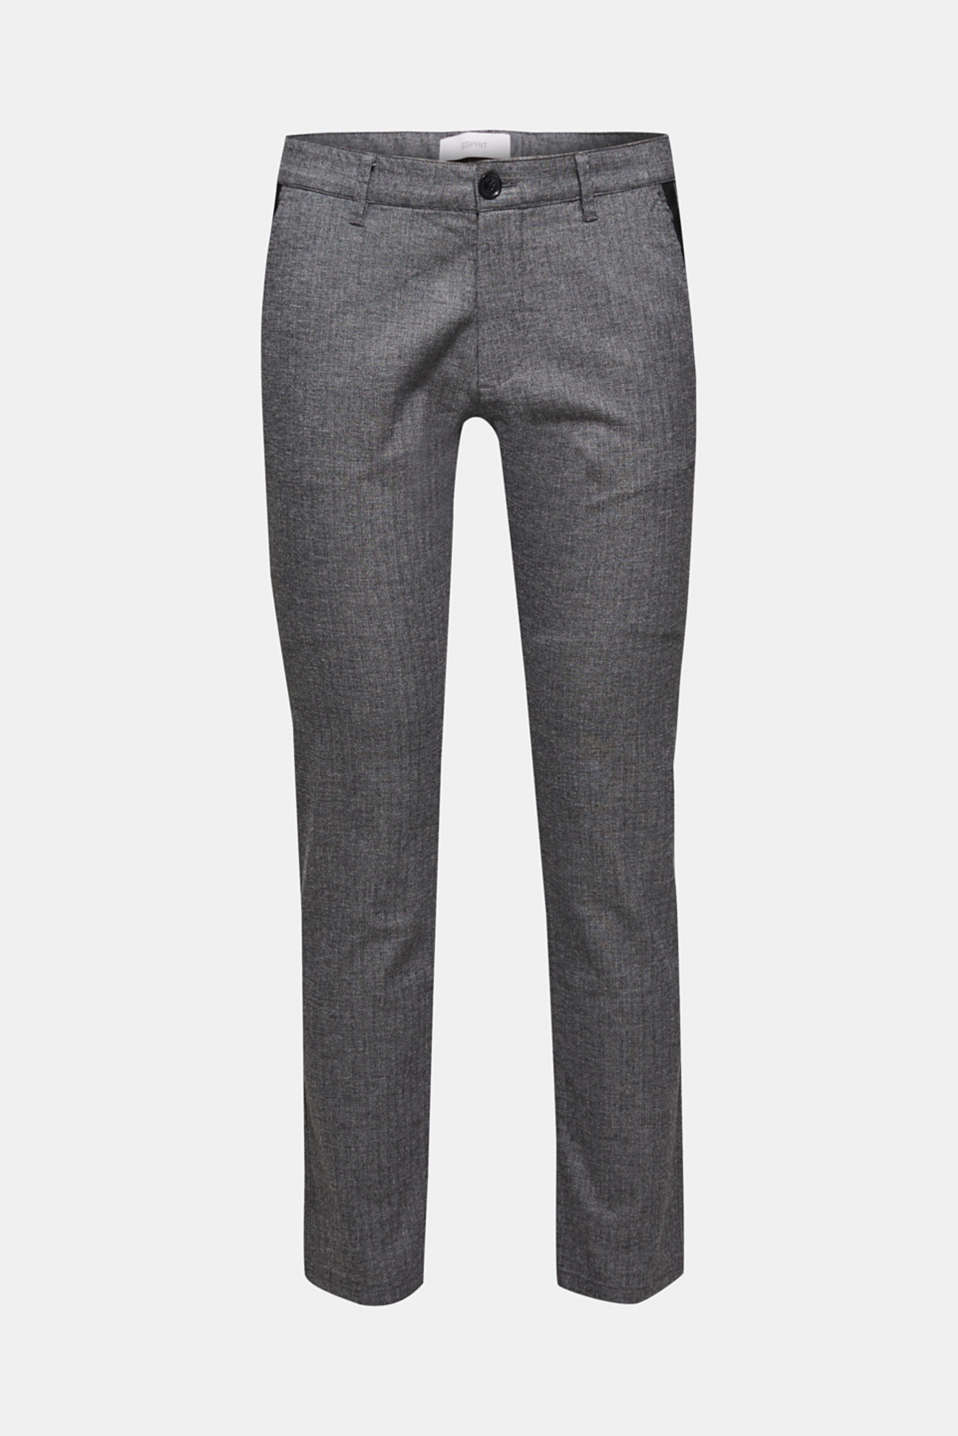 Stretch trousers with a herringbone texture, GREY, detail image number 6